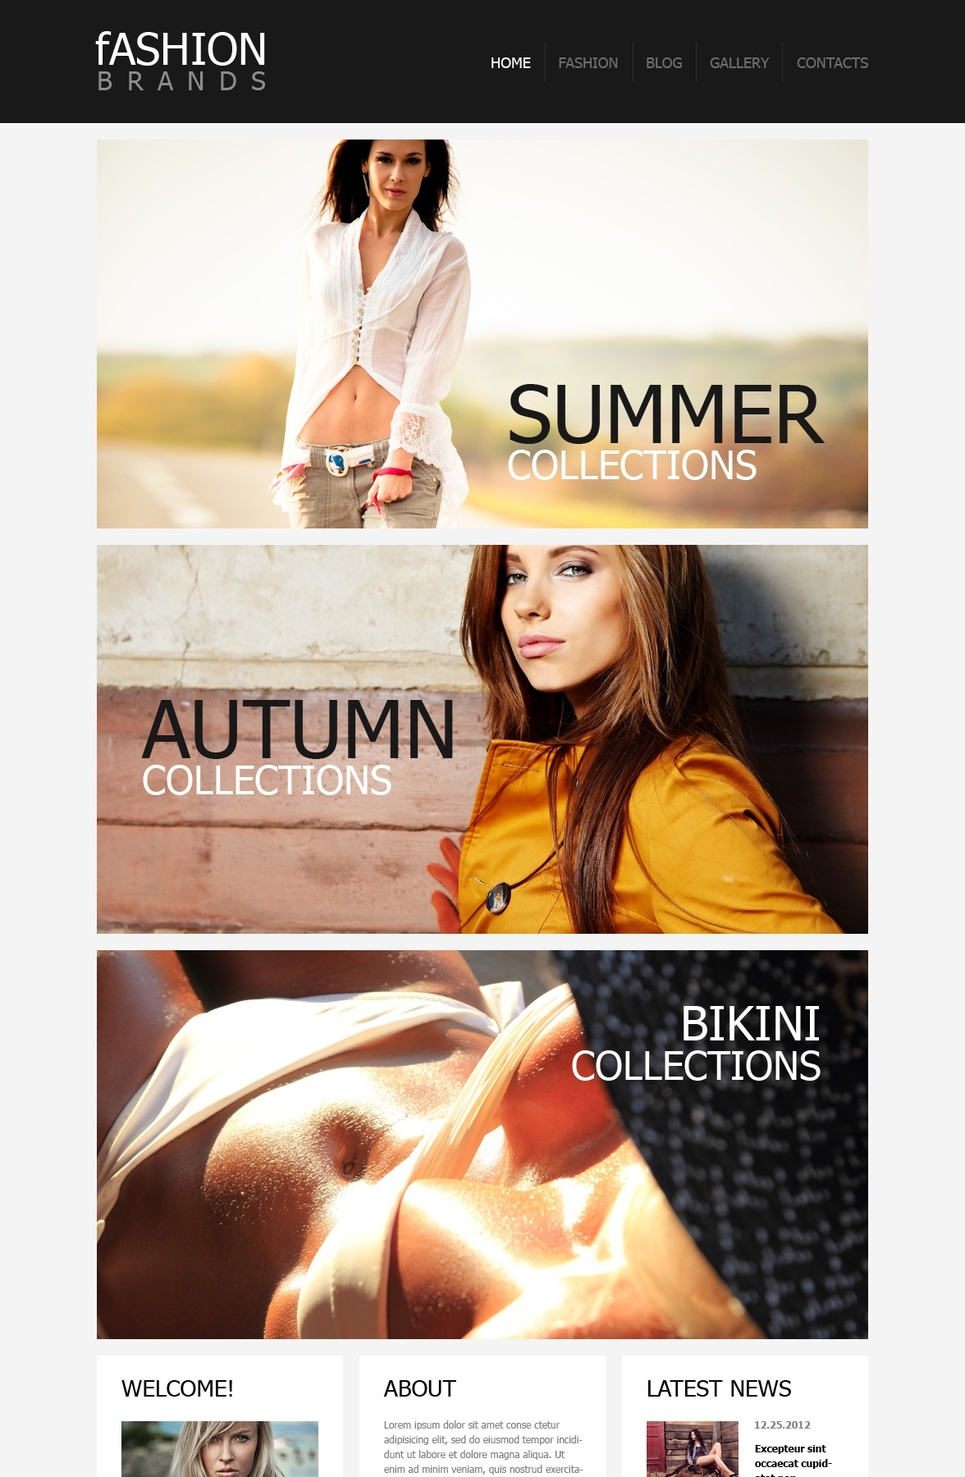 Fashion Brands Template with a Wide Imagery Use - image